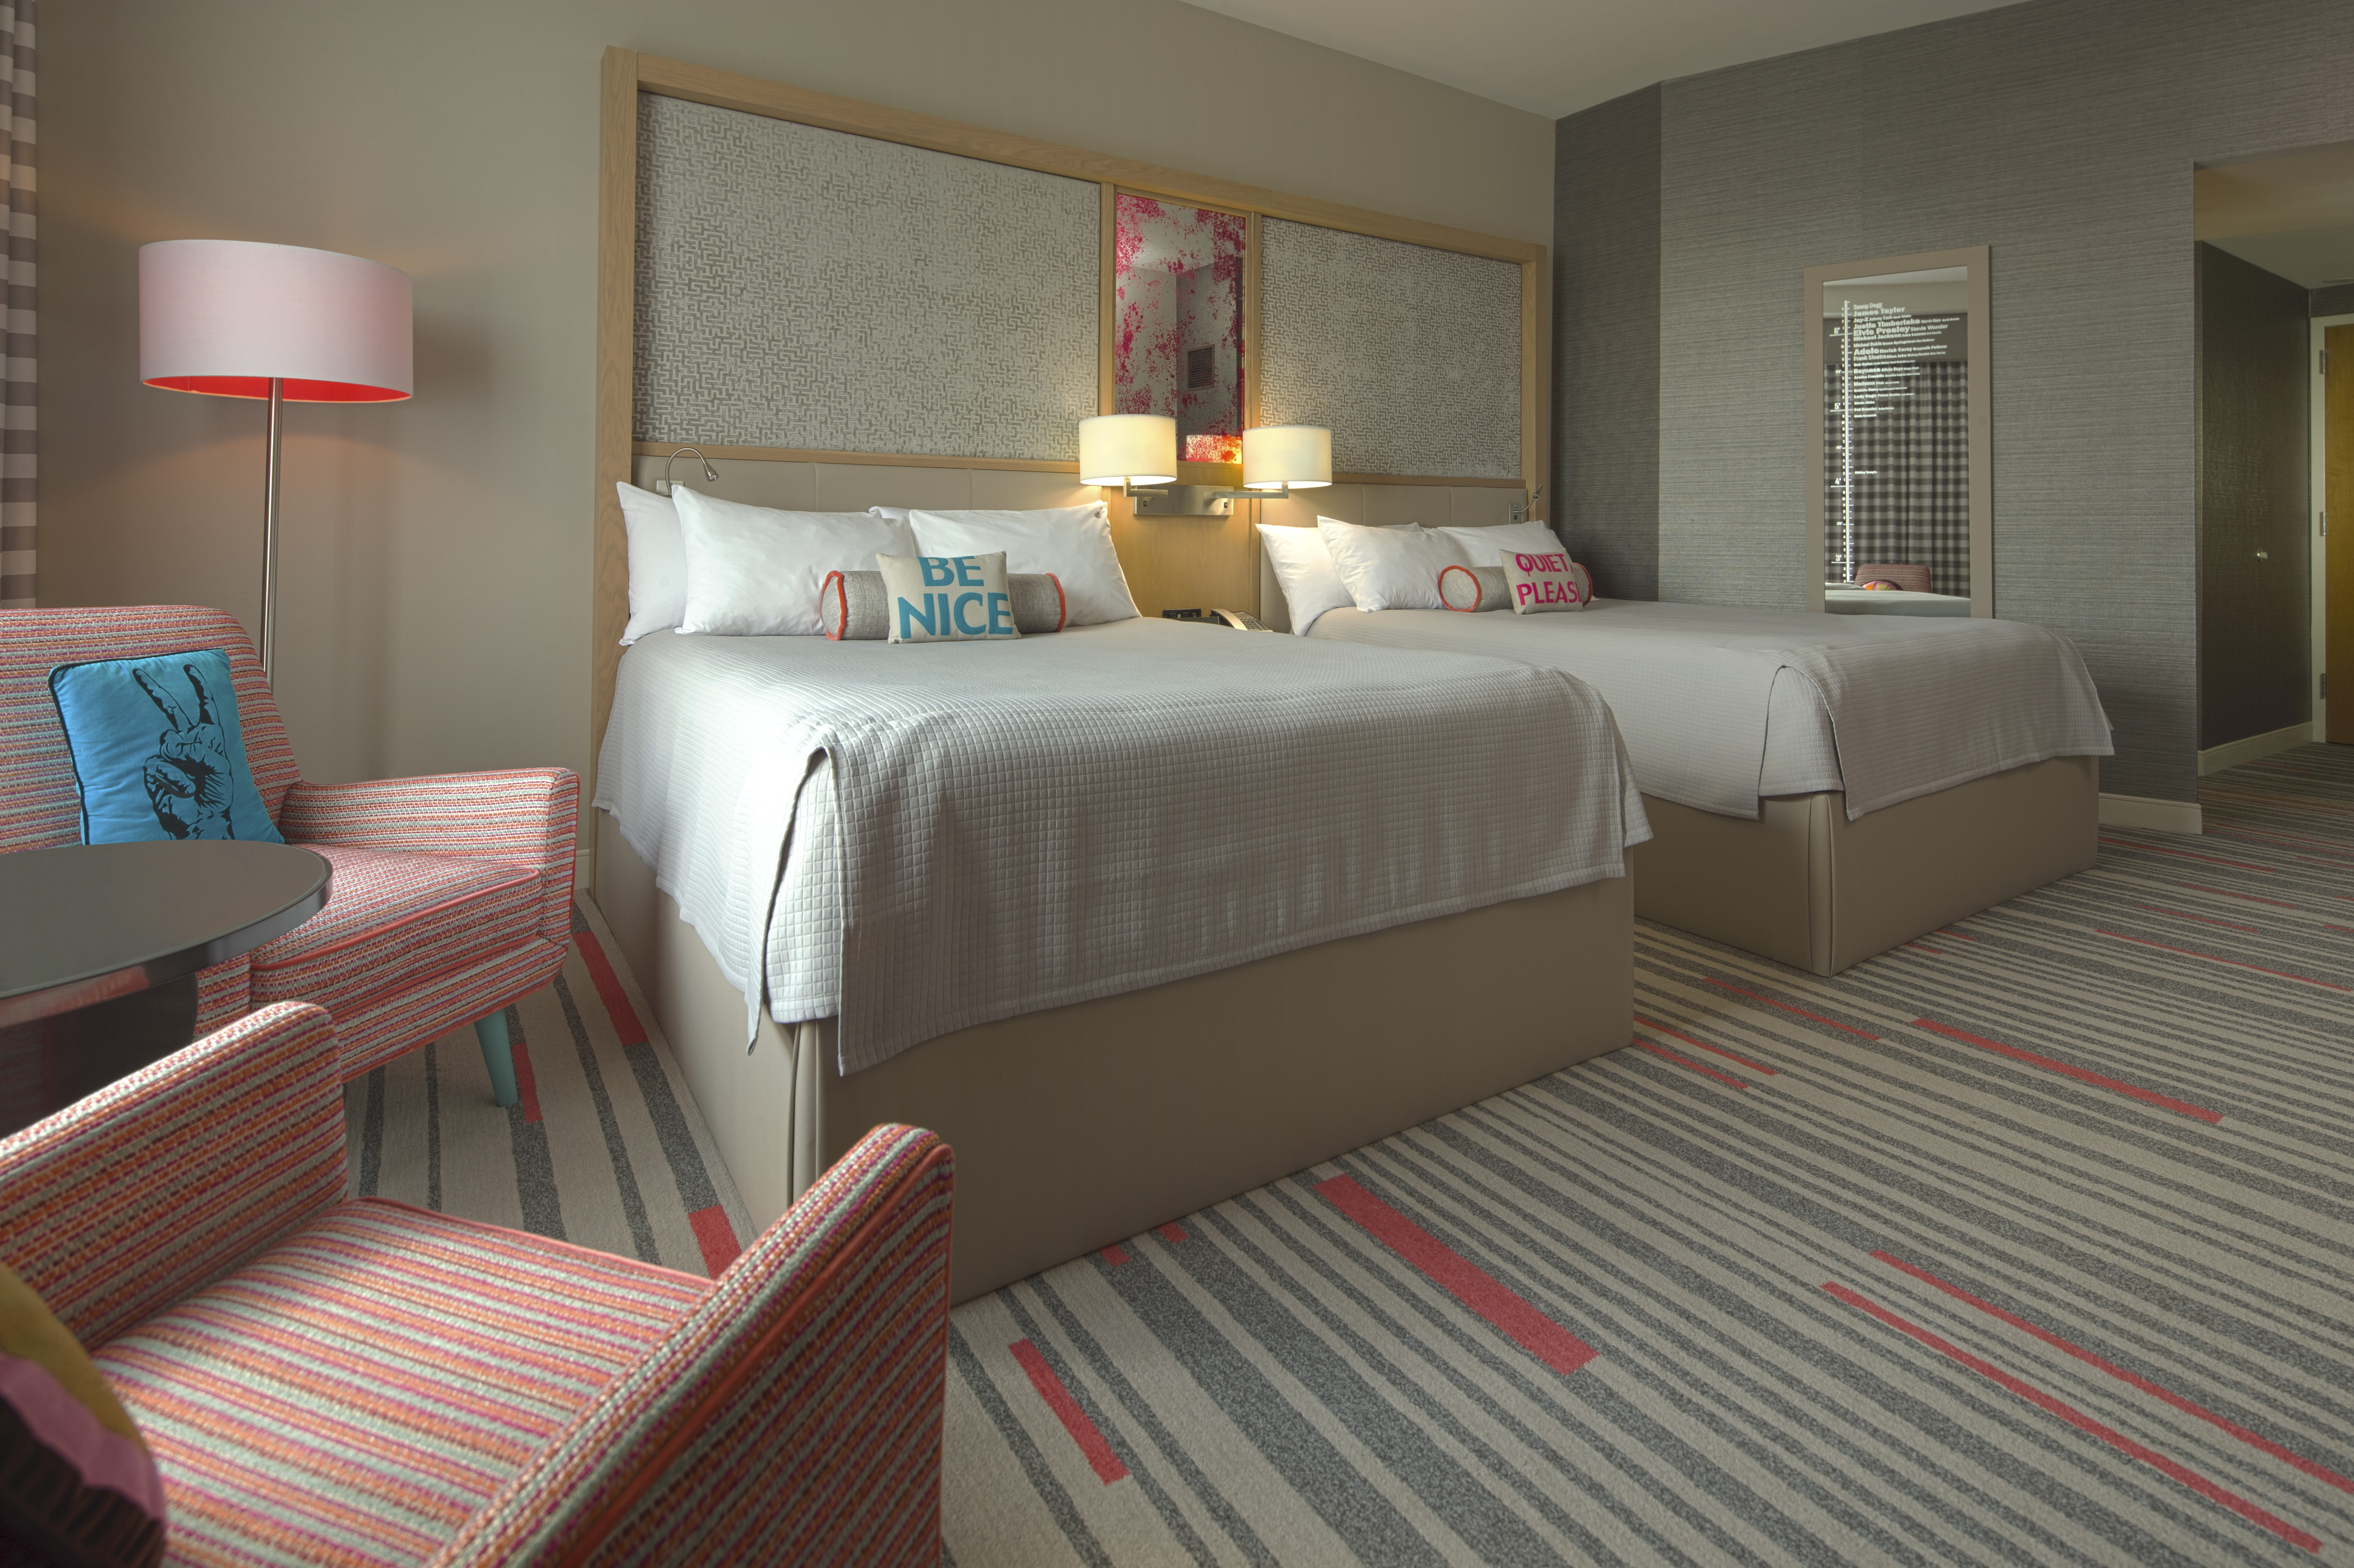 Hard Rock Hotel At Universal Orlando Debuts Stylish New Guest Rooms Inspired By The Essence Of